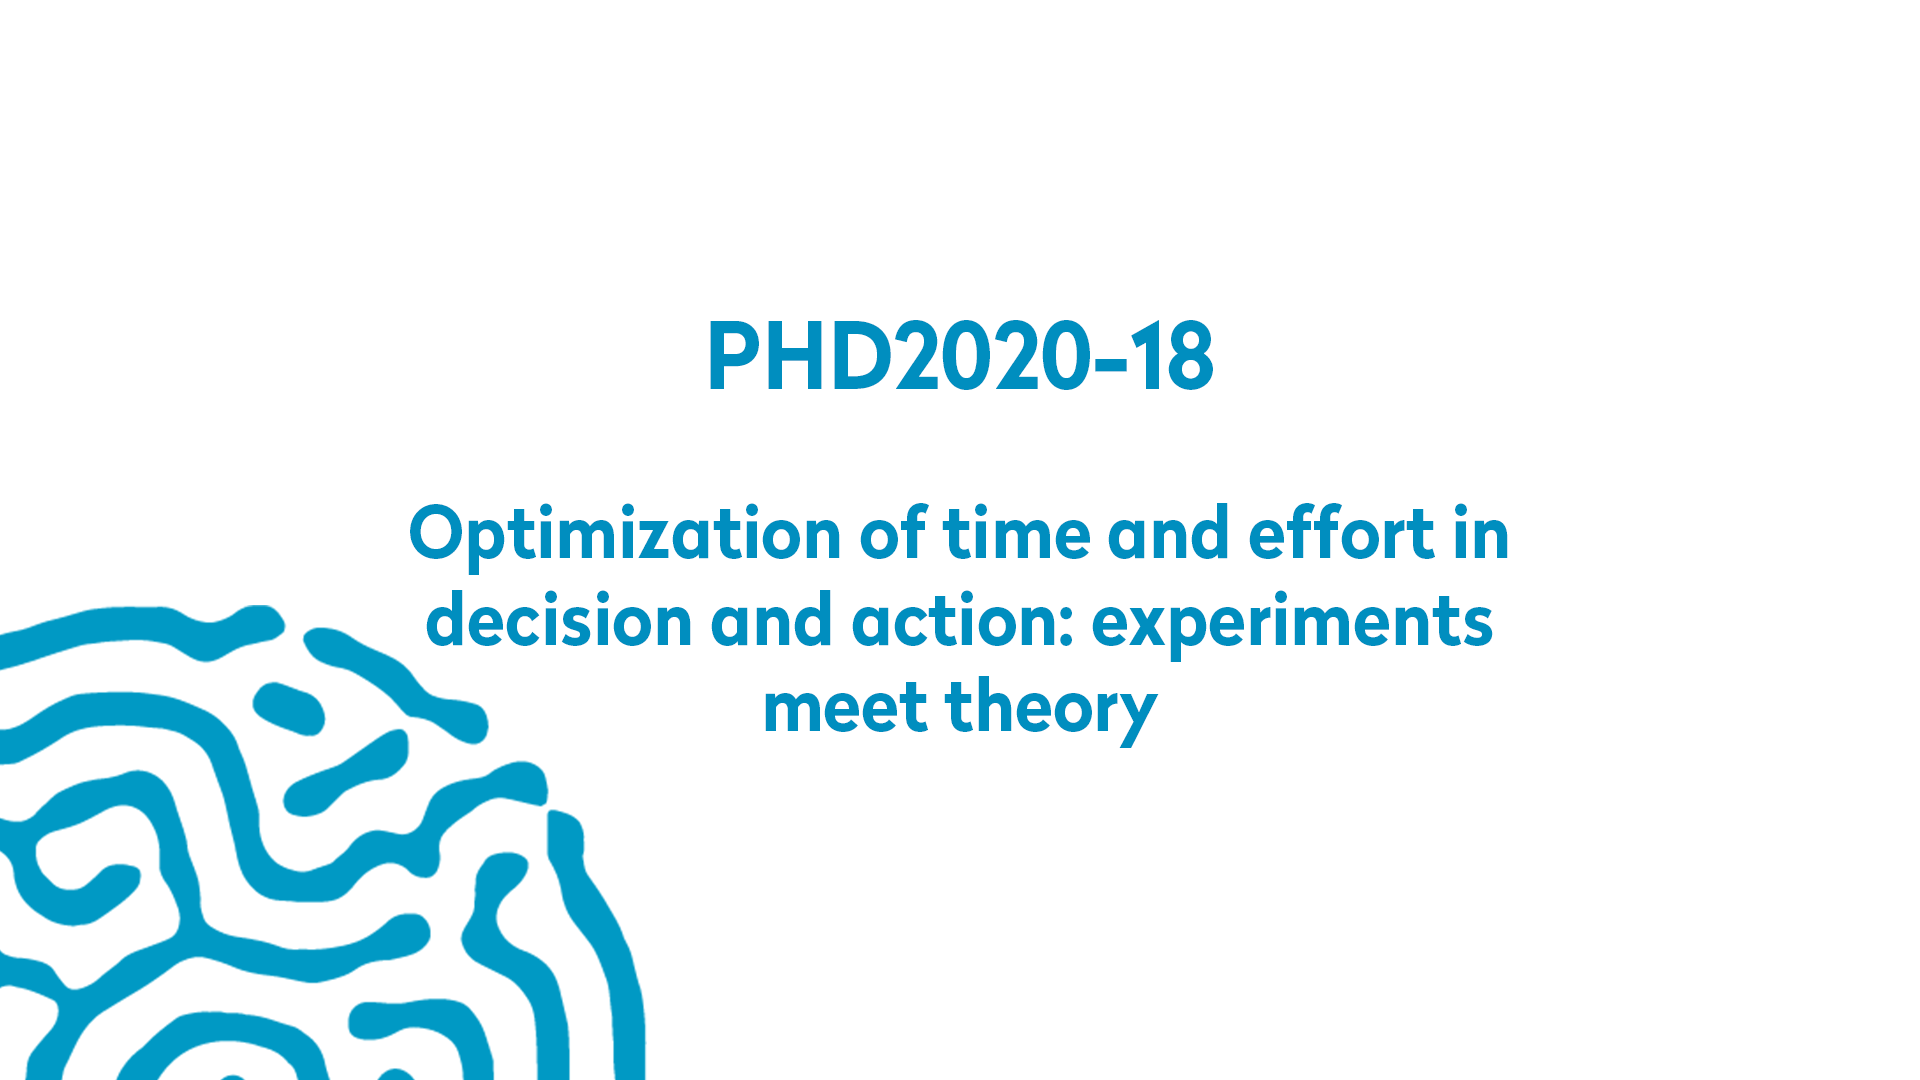 PHD2020-18 | Optimization of time and effort in decision and action: experiments meet theory